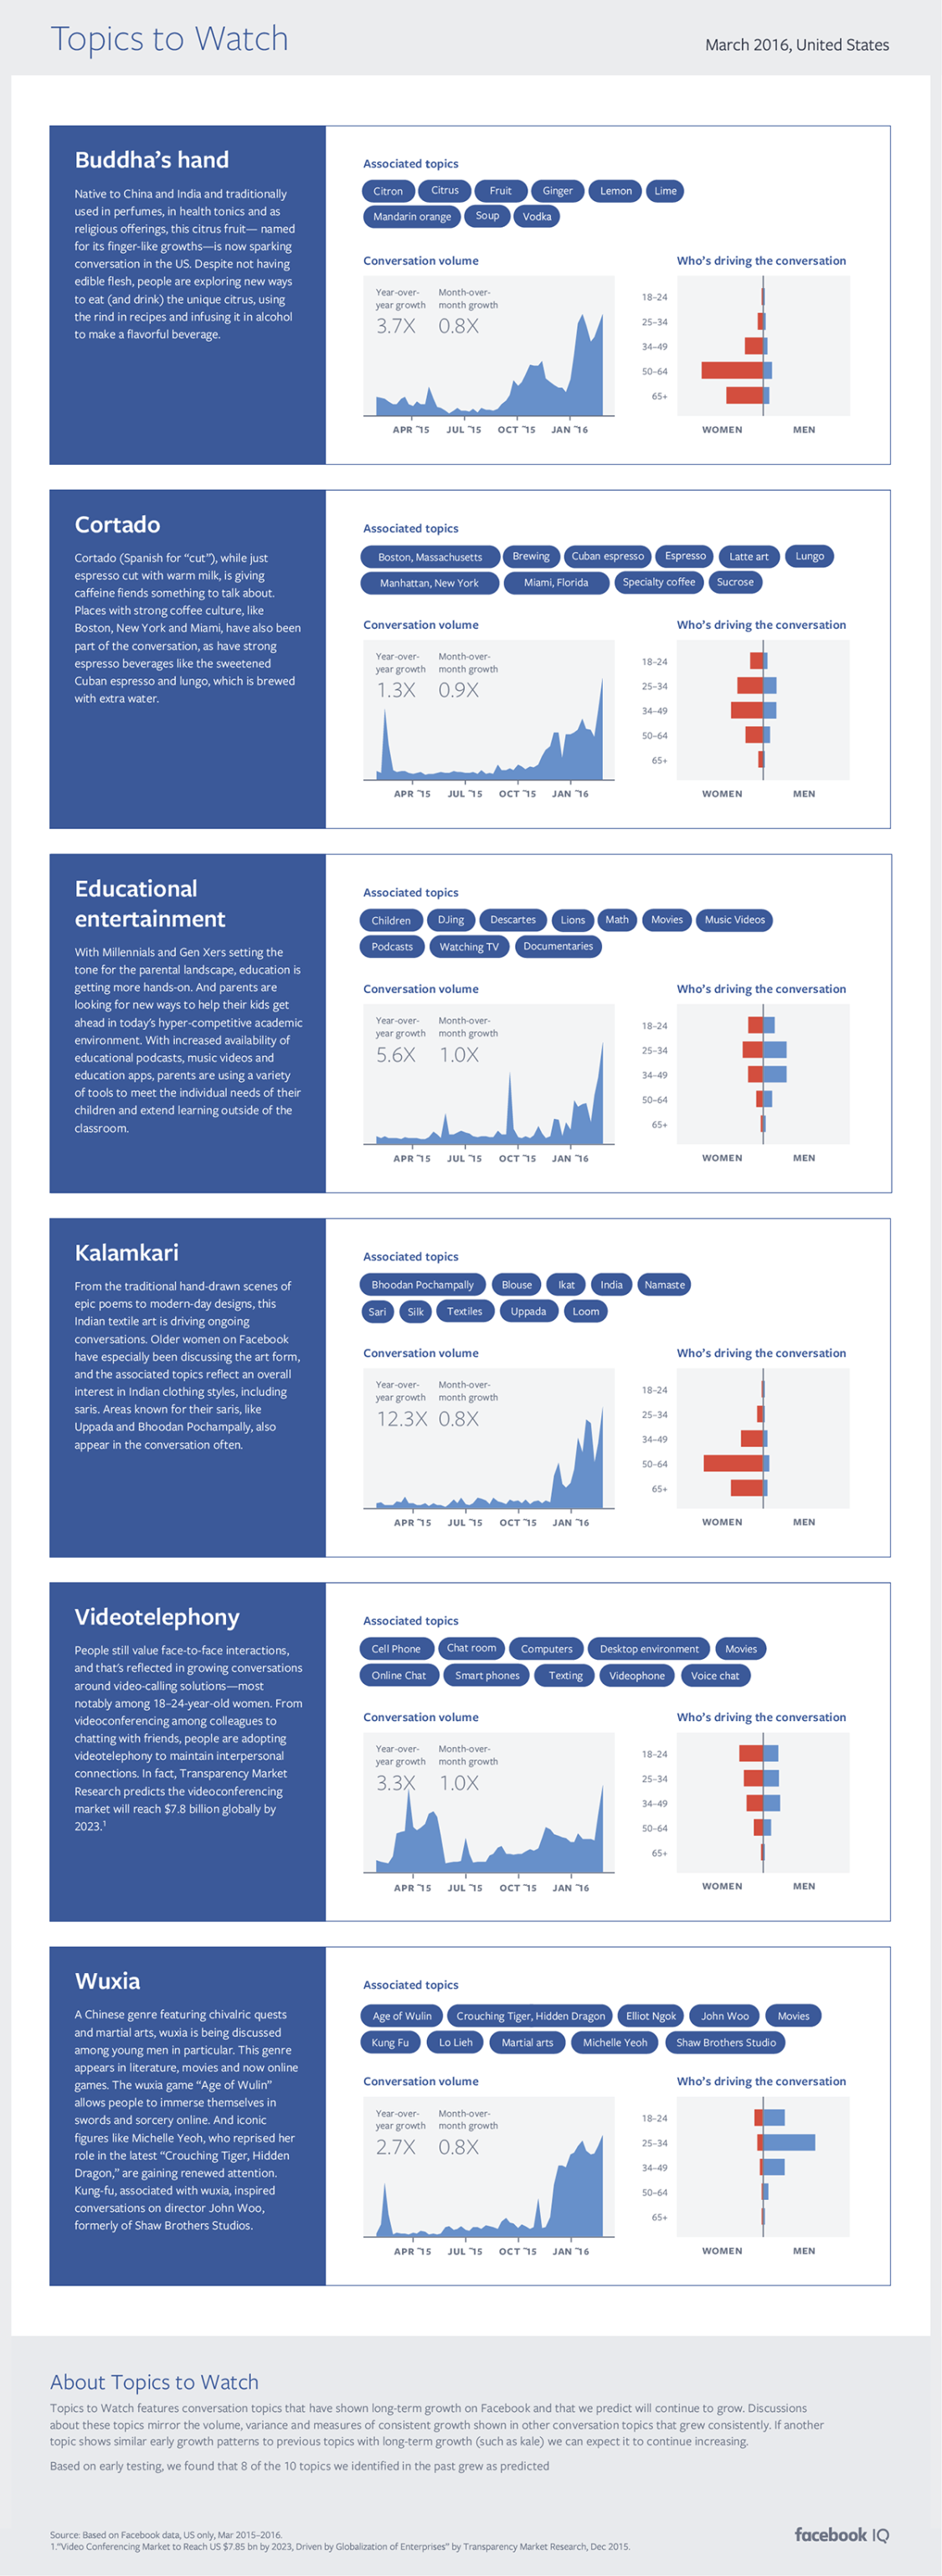 Facebook Releases New 'Topics to Watch' Report Based on Trending Mentions [Infographic] | Social Media Today